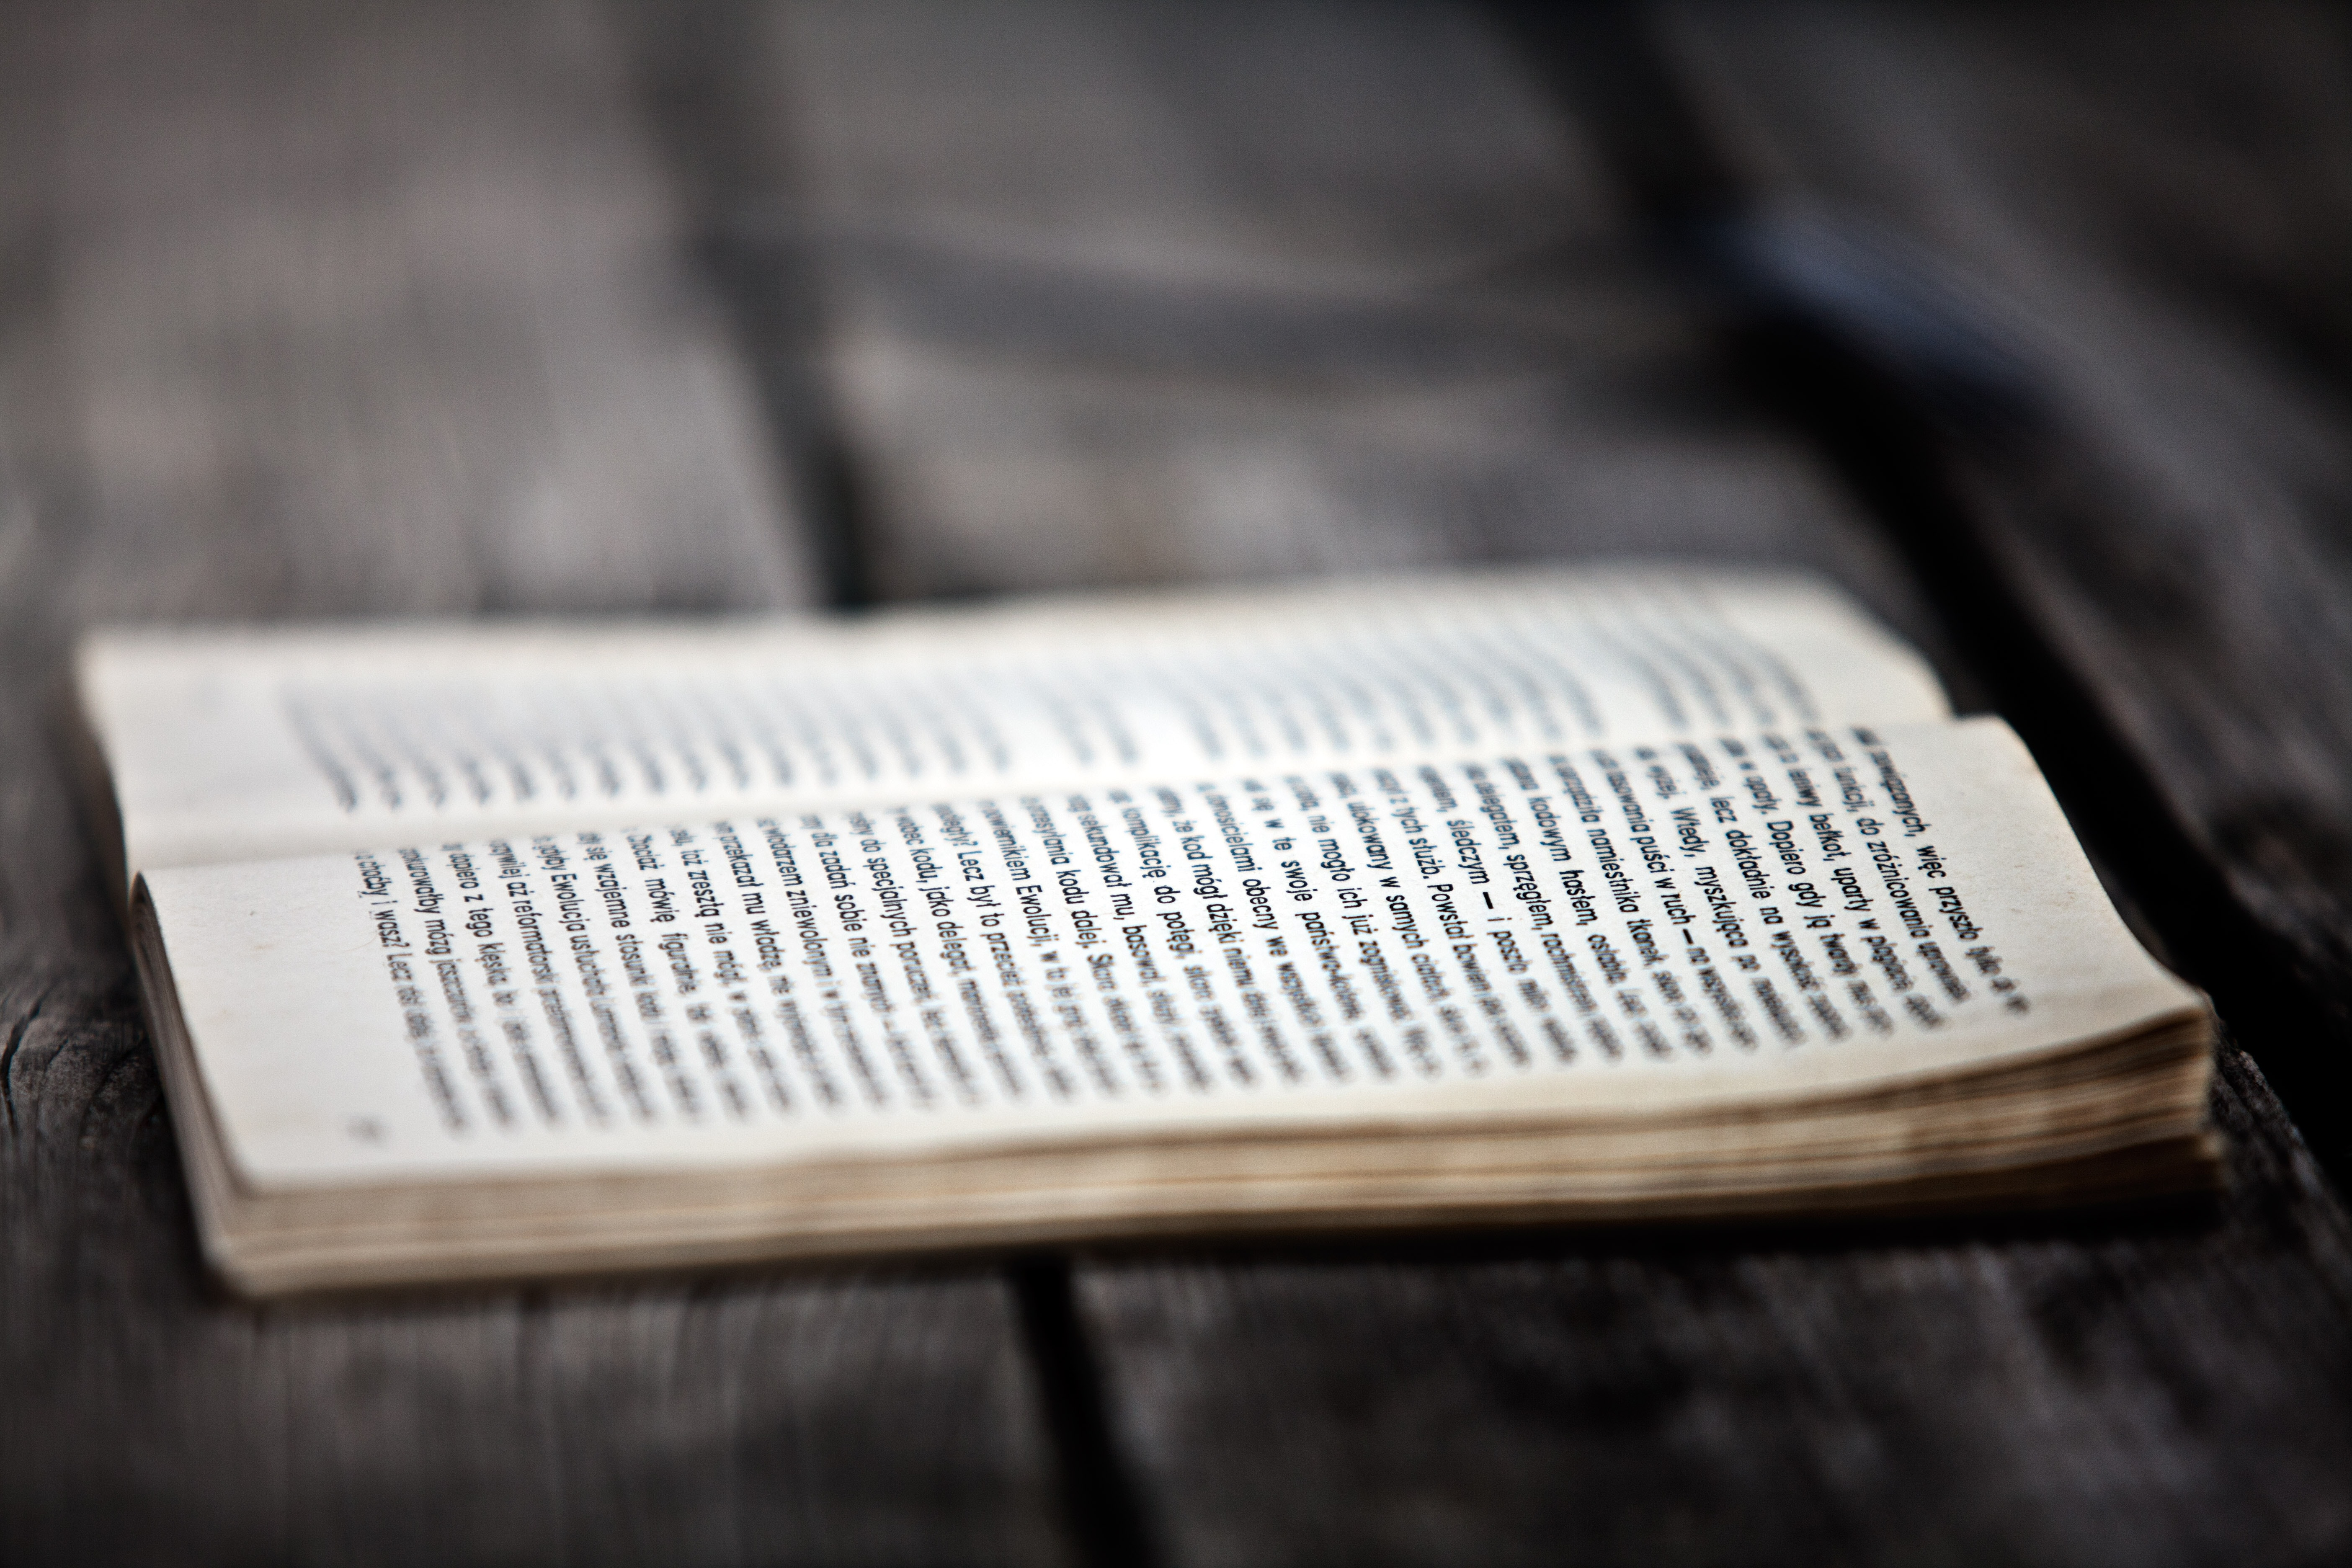 free photo opened book on wooden board table scripture text